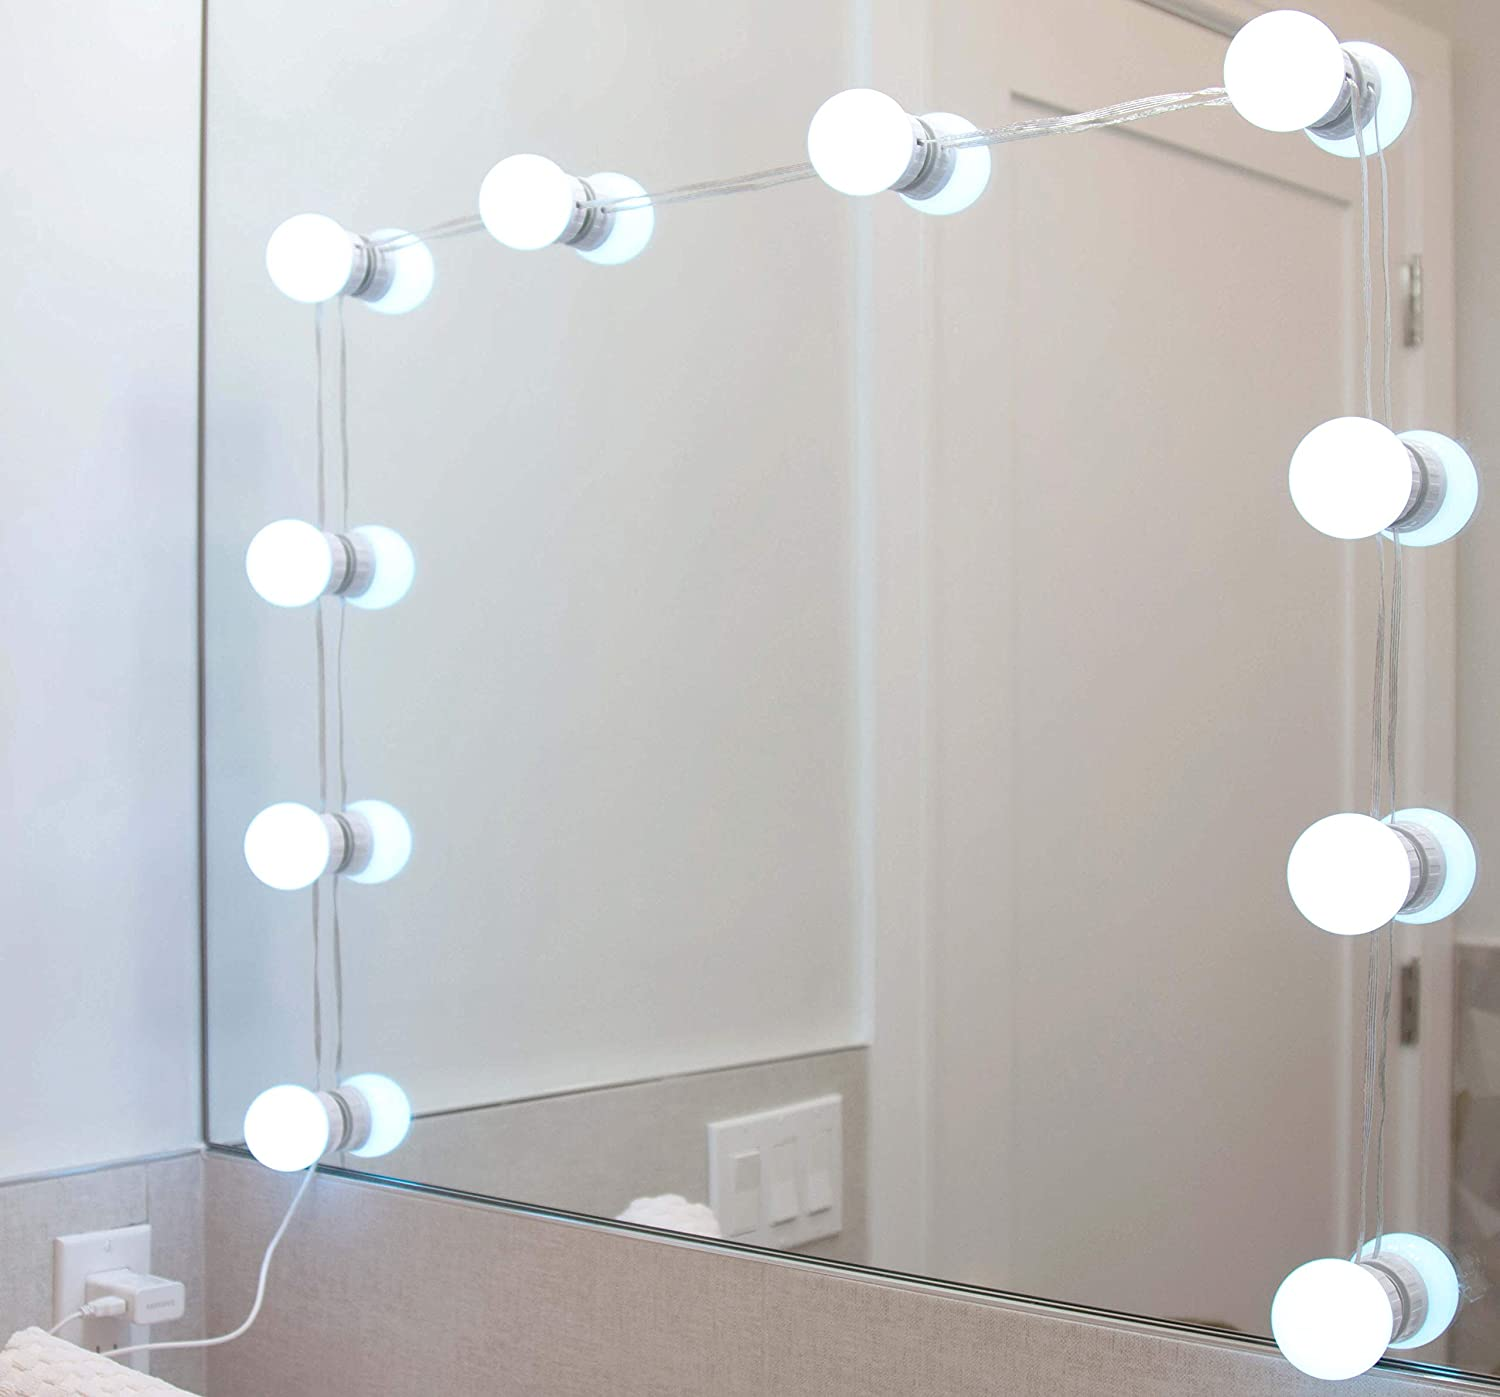 Vanity Mirror Price reduction LED Light Finally popular brand - Dimmable 4 Colors 5 Lighting Brightn